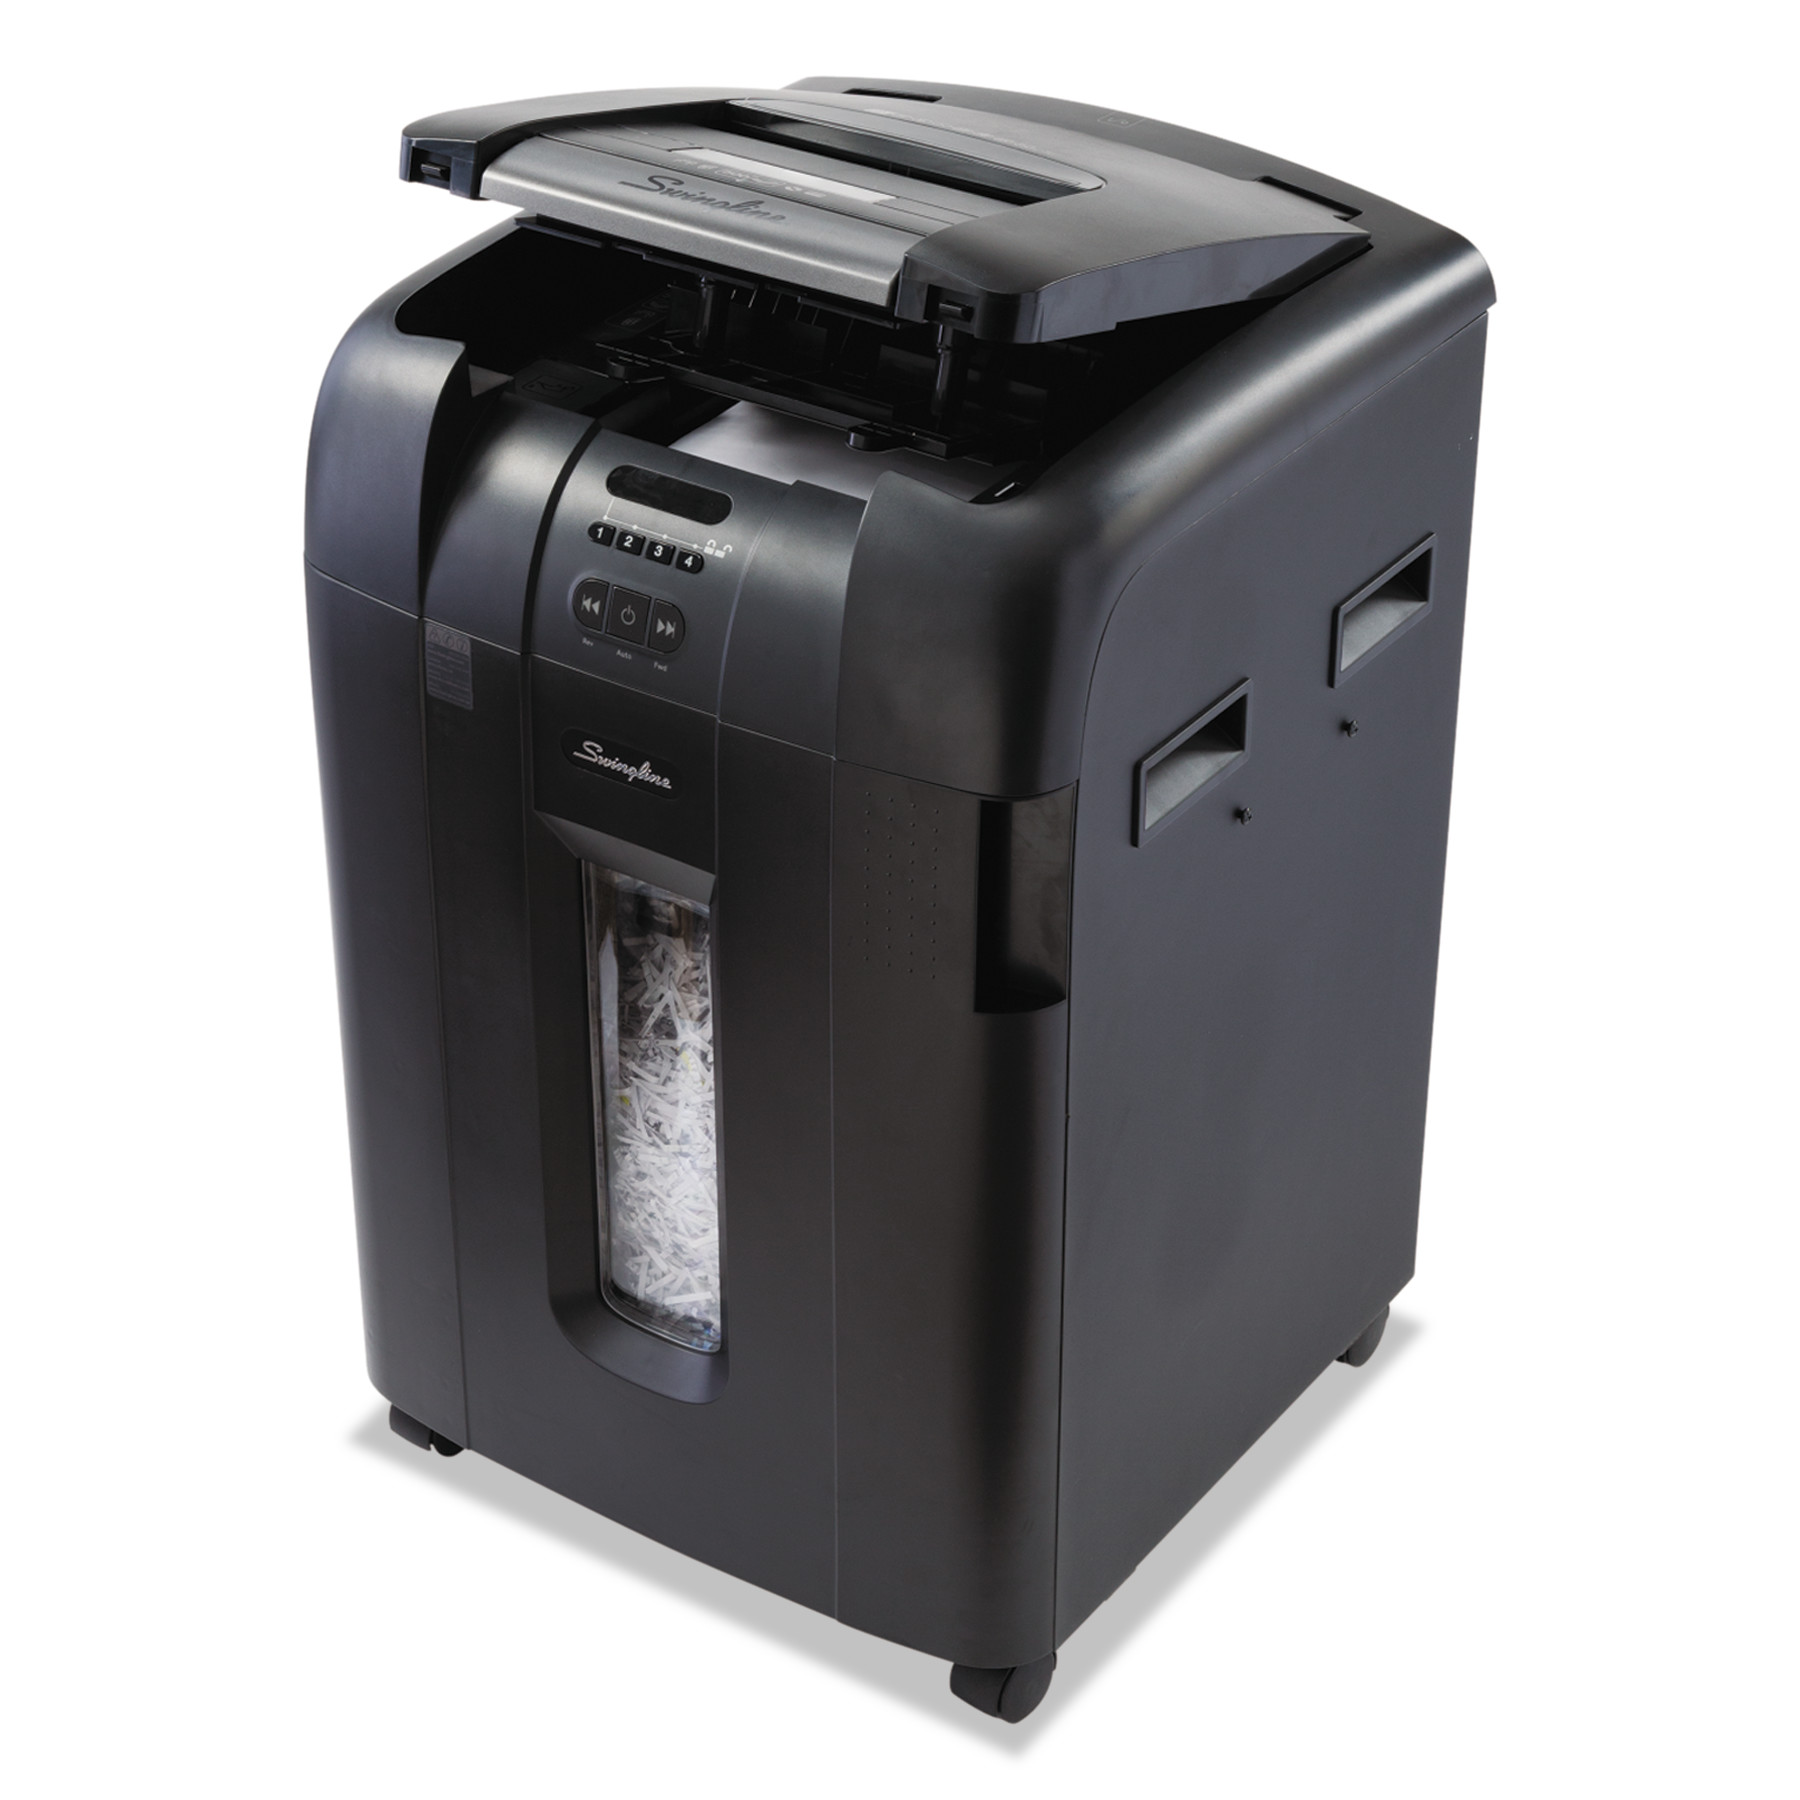 Swingline Stack-and-Shred 600XL Auto Feed Super Cross-Cut Shredder Value Pack, 600 Sheets